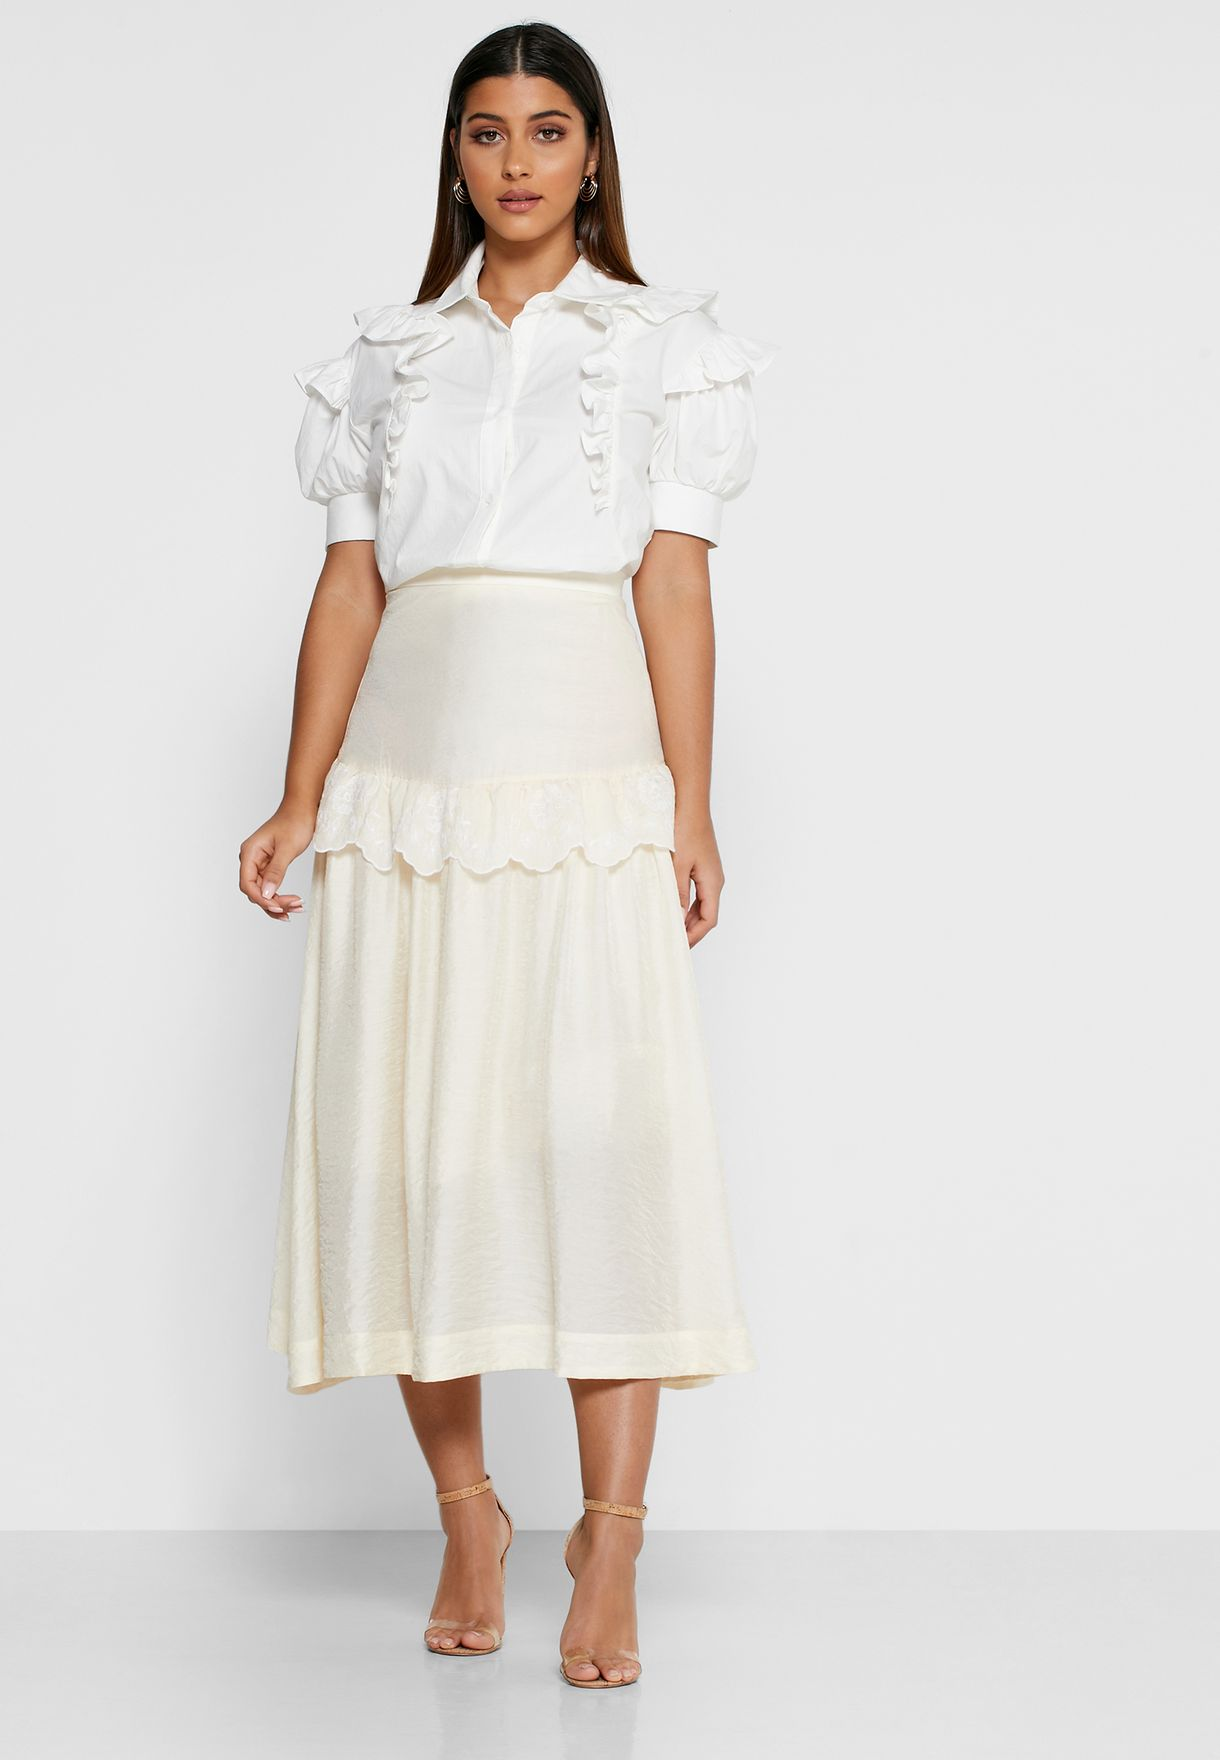 High Hopes Ruffle Trim Sheer Skirt